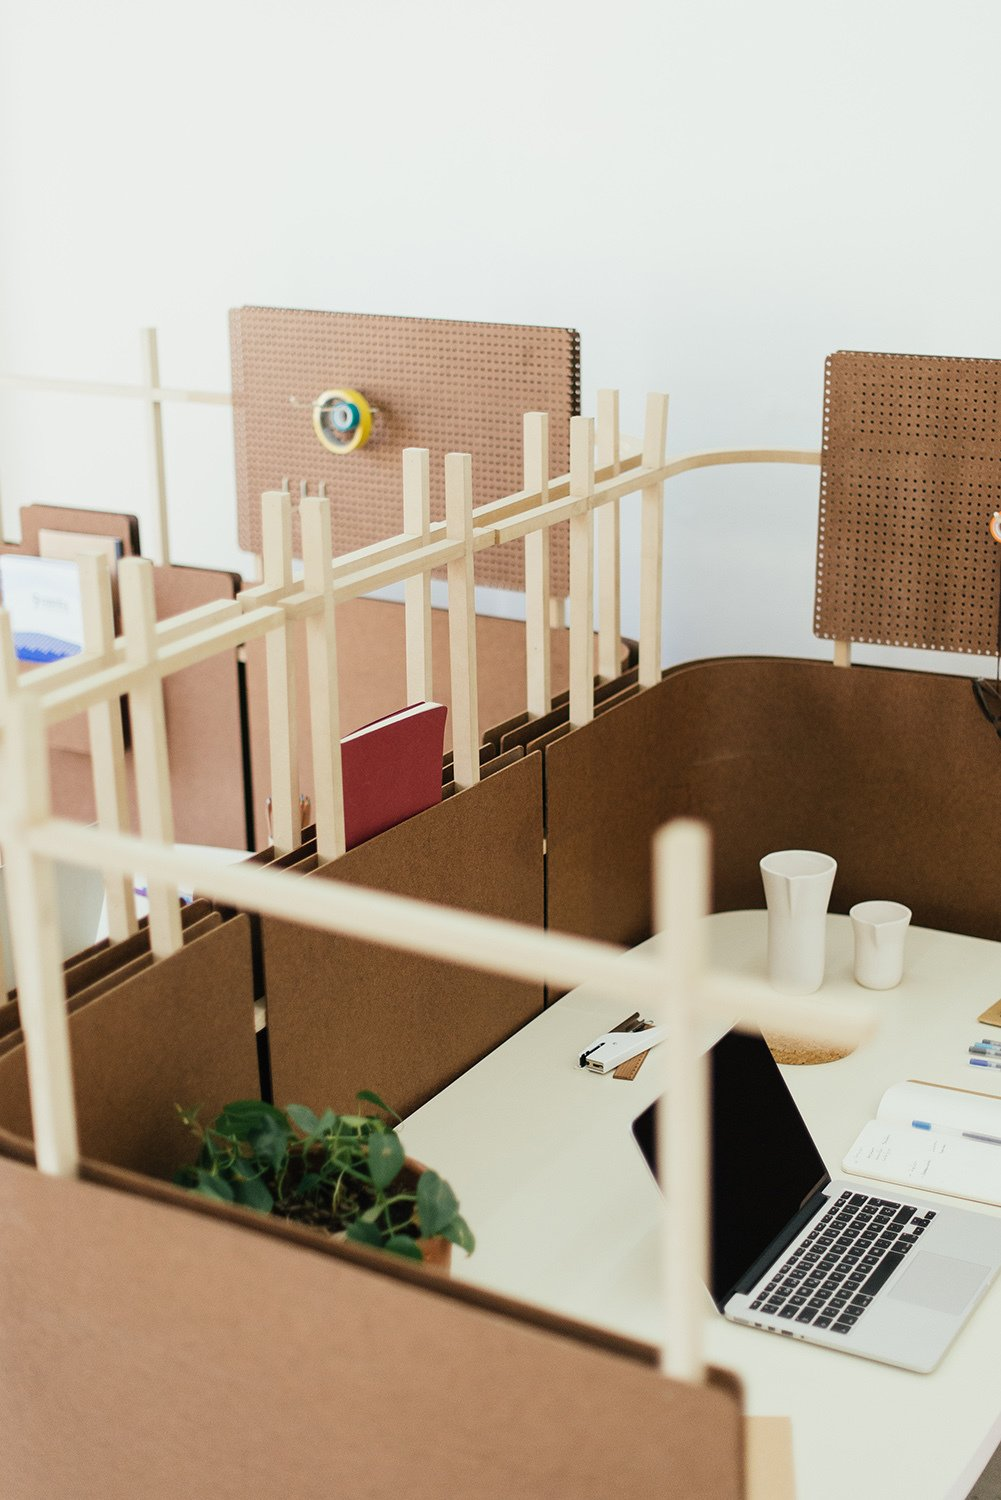 "Lightweight and configurable, the designers see the system as a flexible solution for workspaces, as well as schools, libraries, and emergency shelters.  Search ""room dividers 0"" from A Good-Looking Office System Made from an Everyday Packing Material"